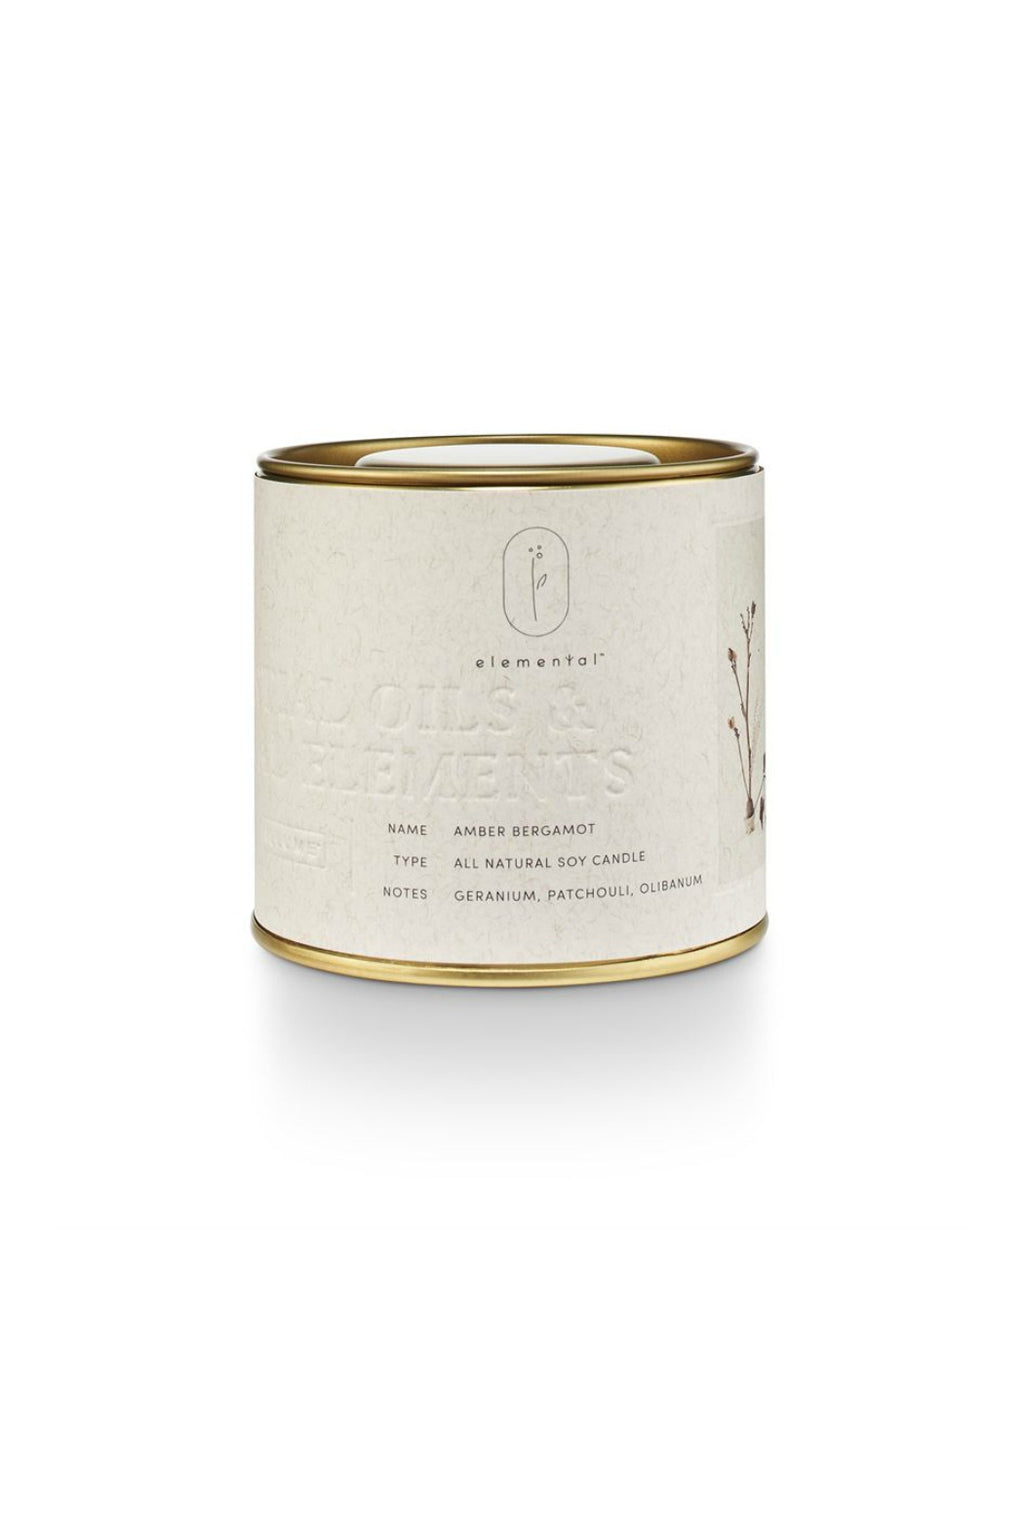 Illume Elemental Amber Bergamot Tin Candle